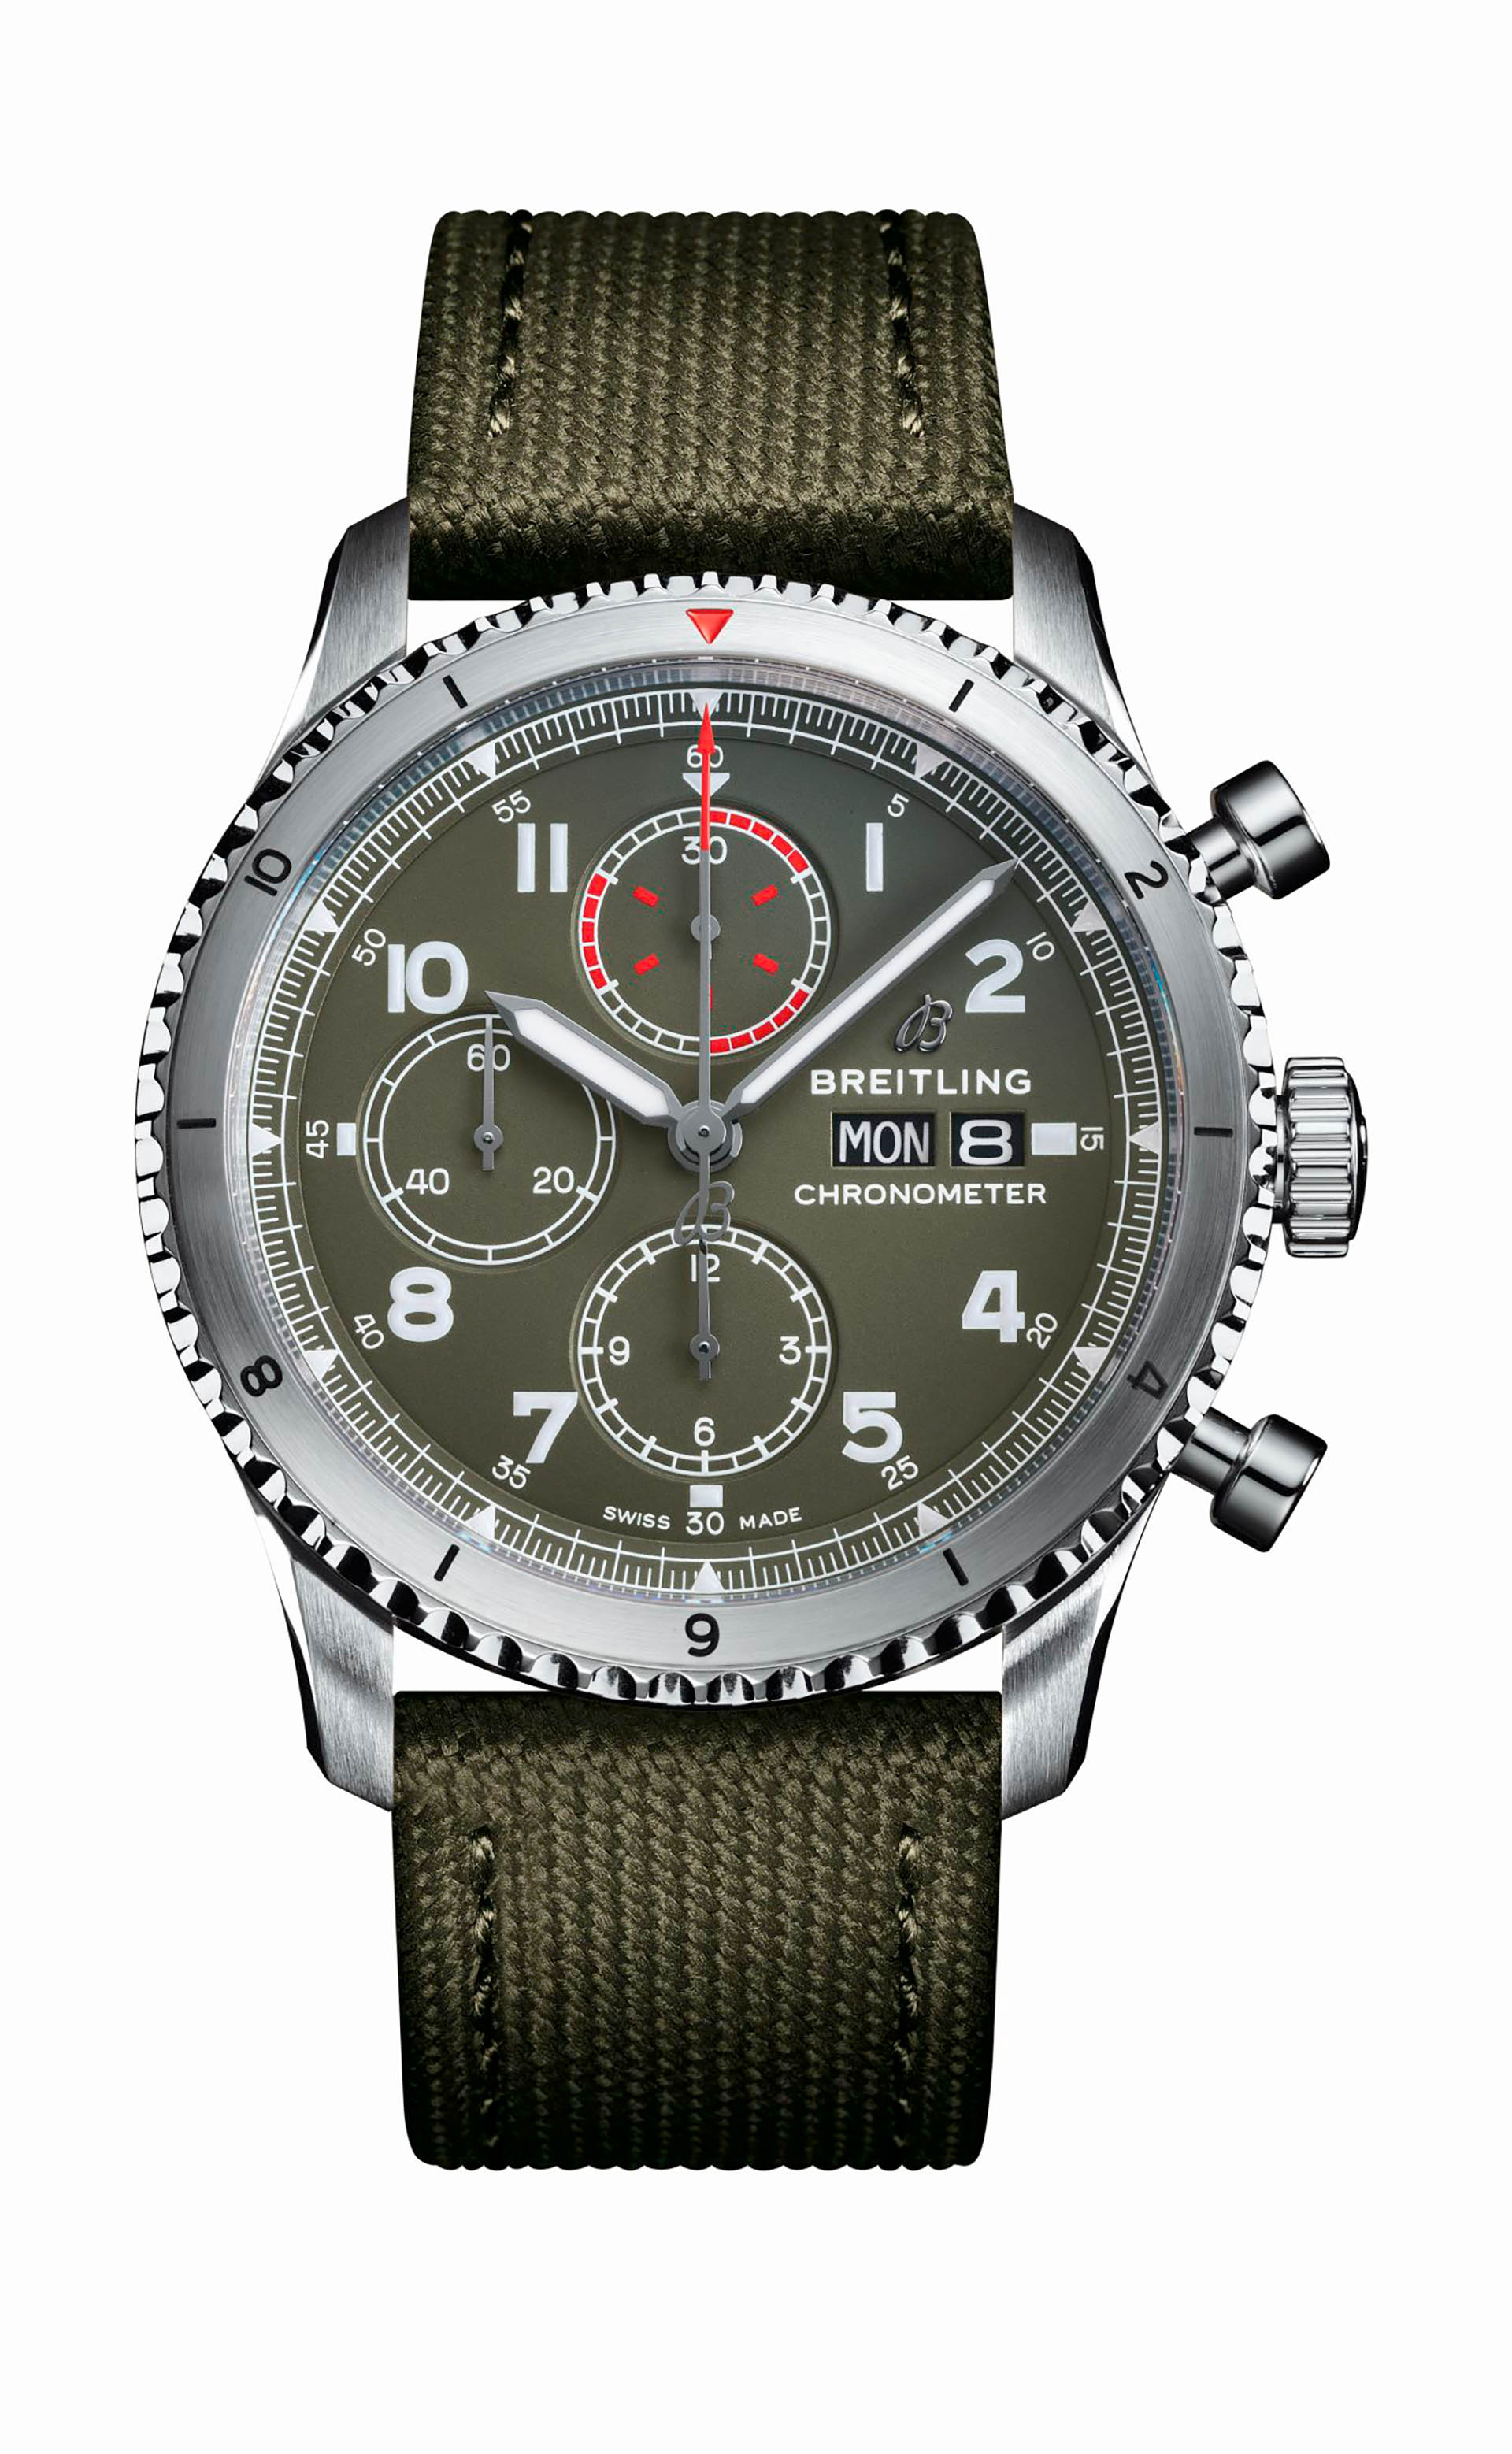 Aviator 8 Chronograph 43 Curtiss Warhawk mit Valjoux-Technik